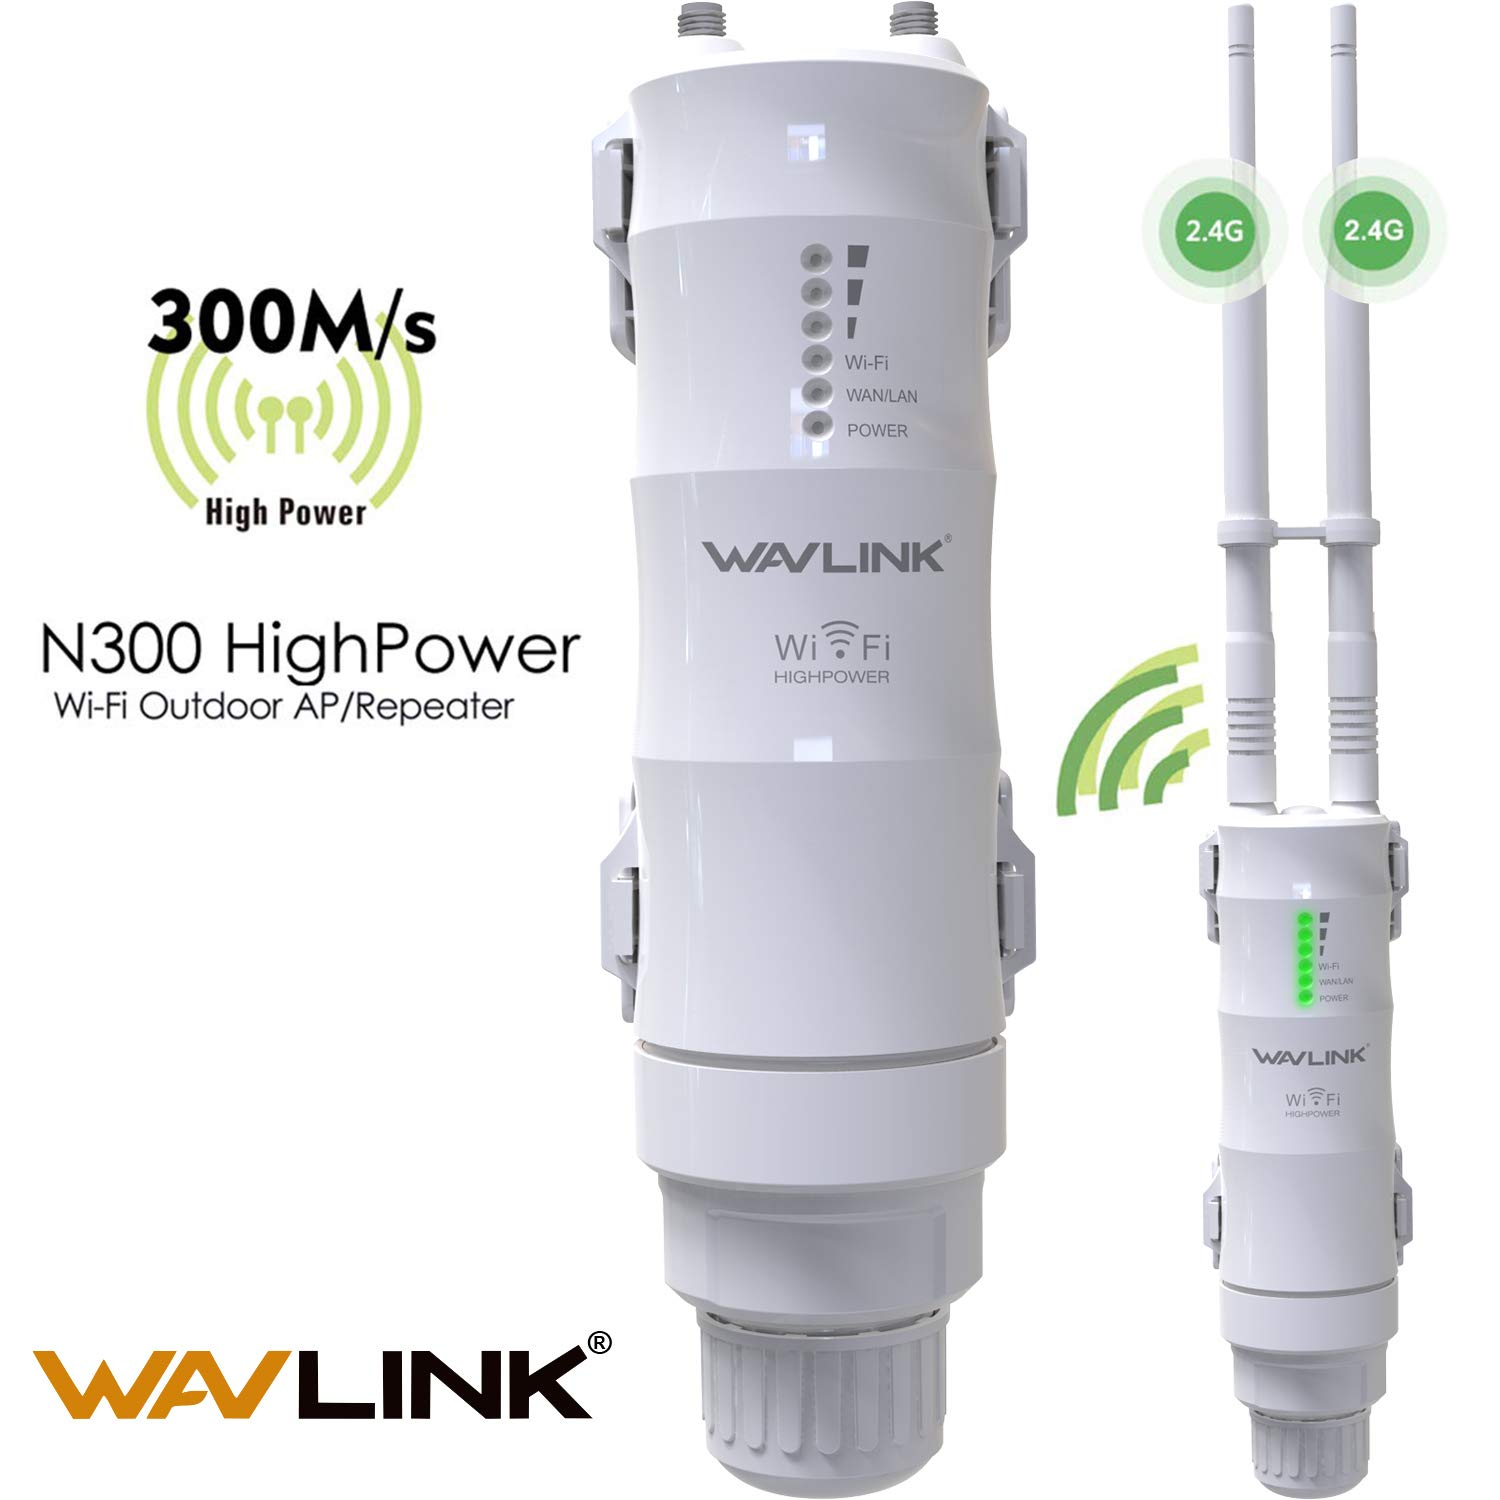 WAVLINK 2.4GHz 300Mbps Outdoor Long Range PoE Access Point, 3 in 1 Weatherproof Wireless AP (CPE)/ Exterior Router/WiFi Repeater Range Extender Internet Amplifier Network Signal Booster in 2 Antennas by WAVLINK